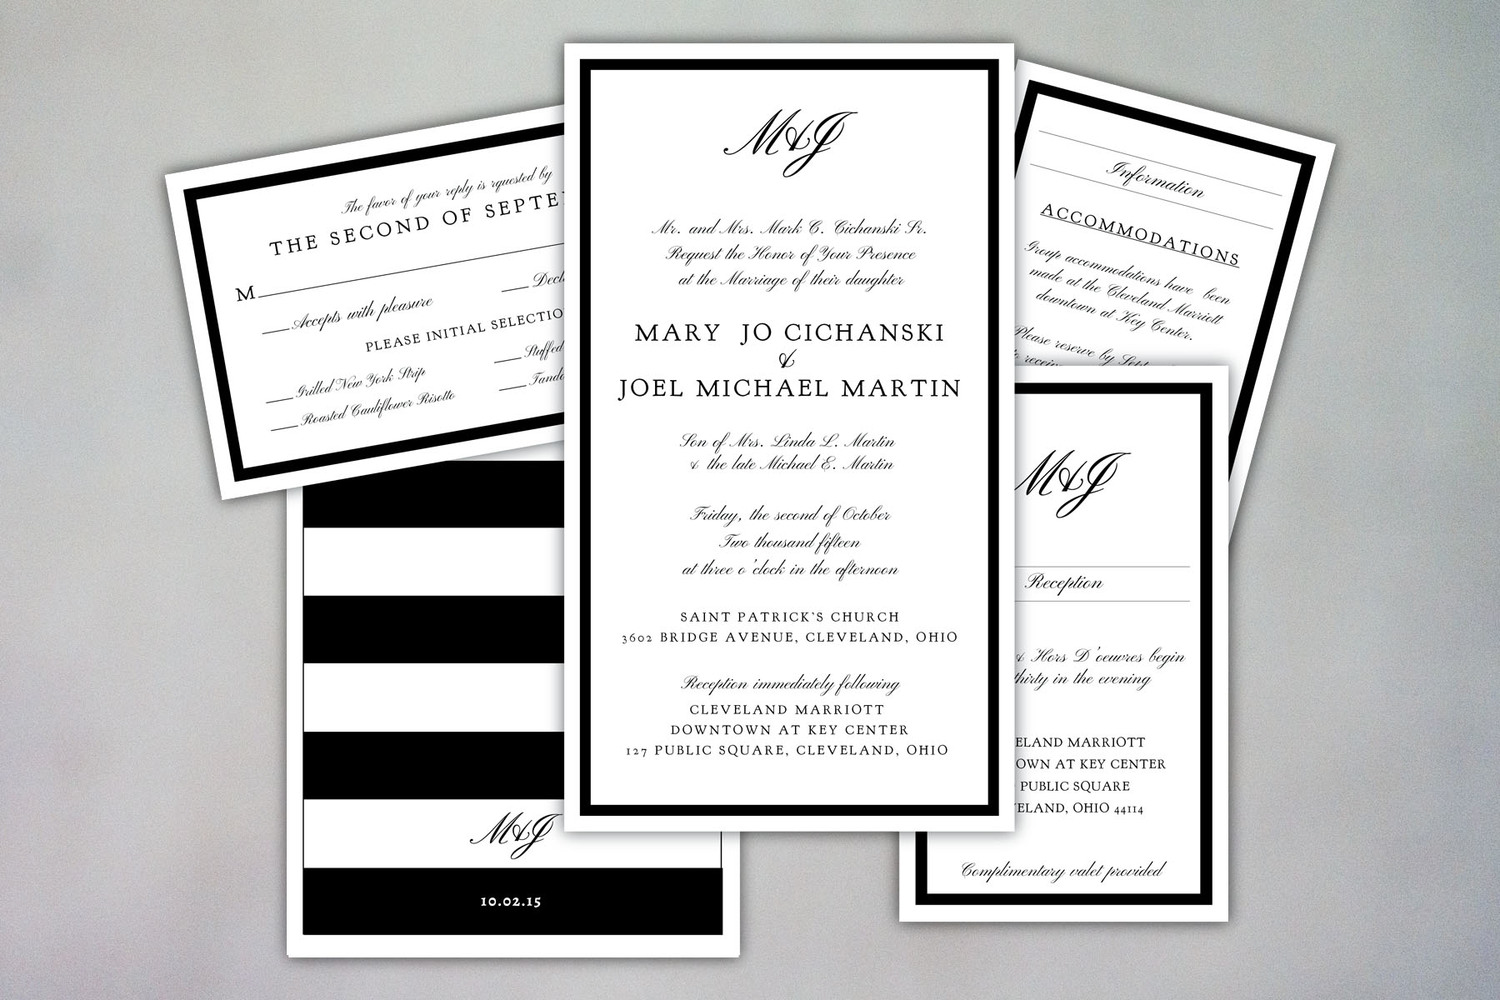 Wedding invite michelle parros michelleparroswedding invite designs 6g monicamarmolfo Image collections